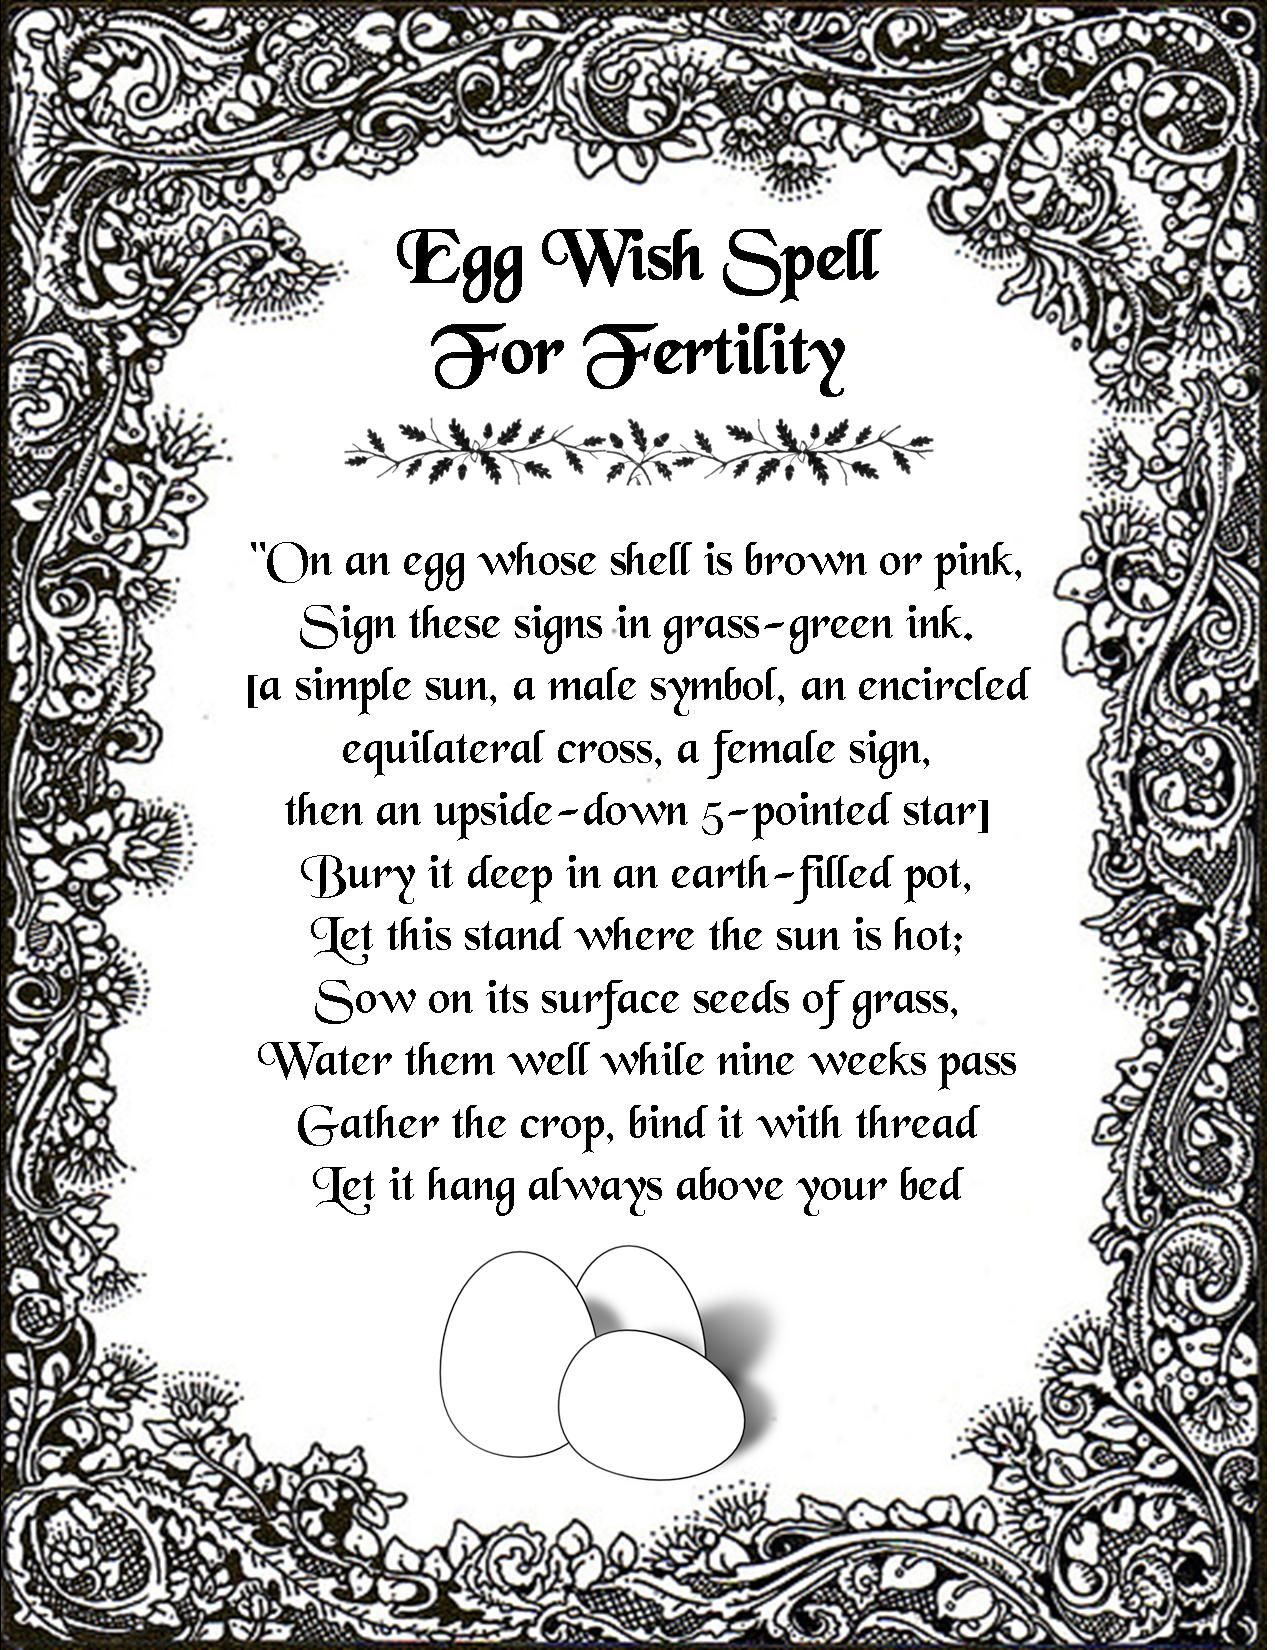 An egg wish spell for fertility witchy things pinterest an egg wish spell for fertility buycottarizona Choice Image